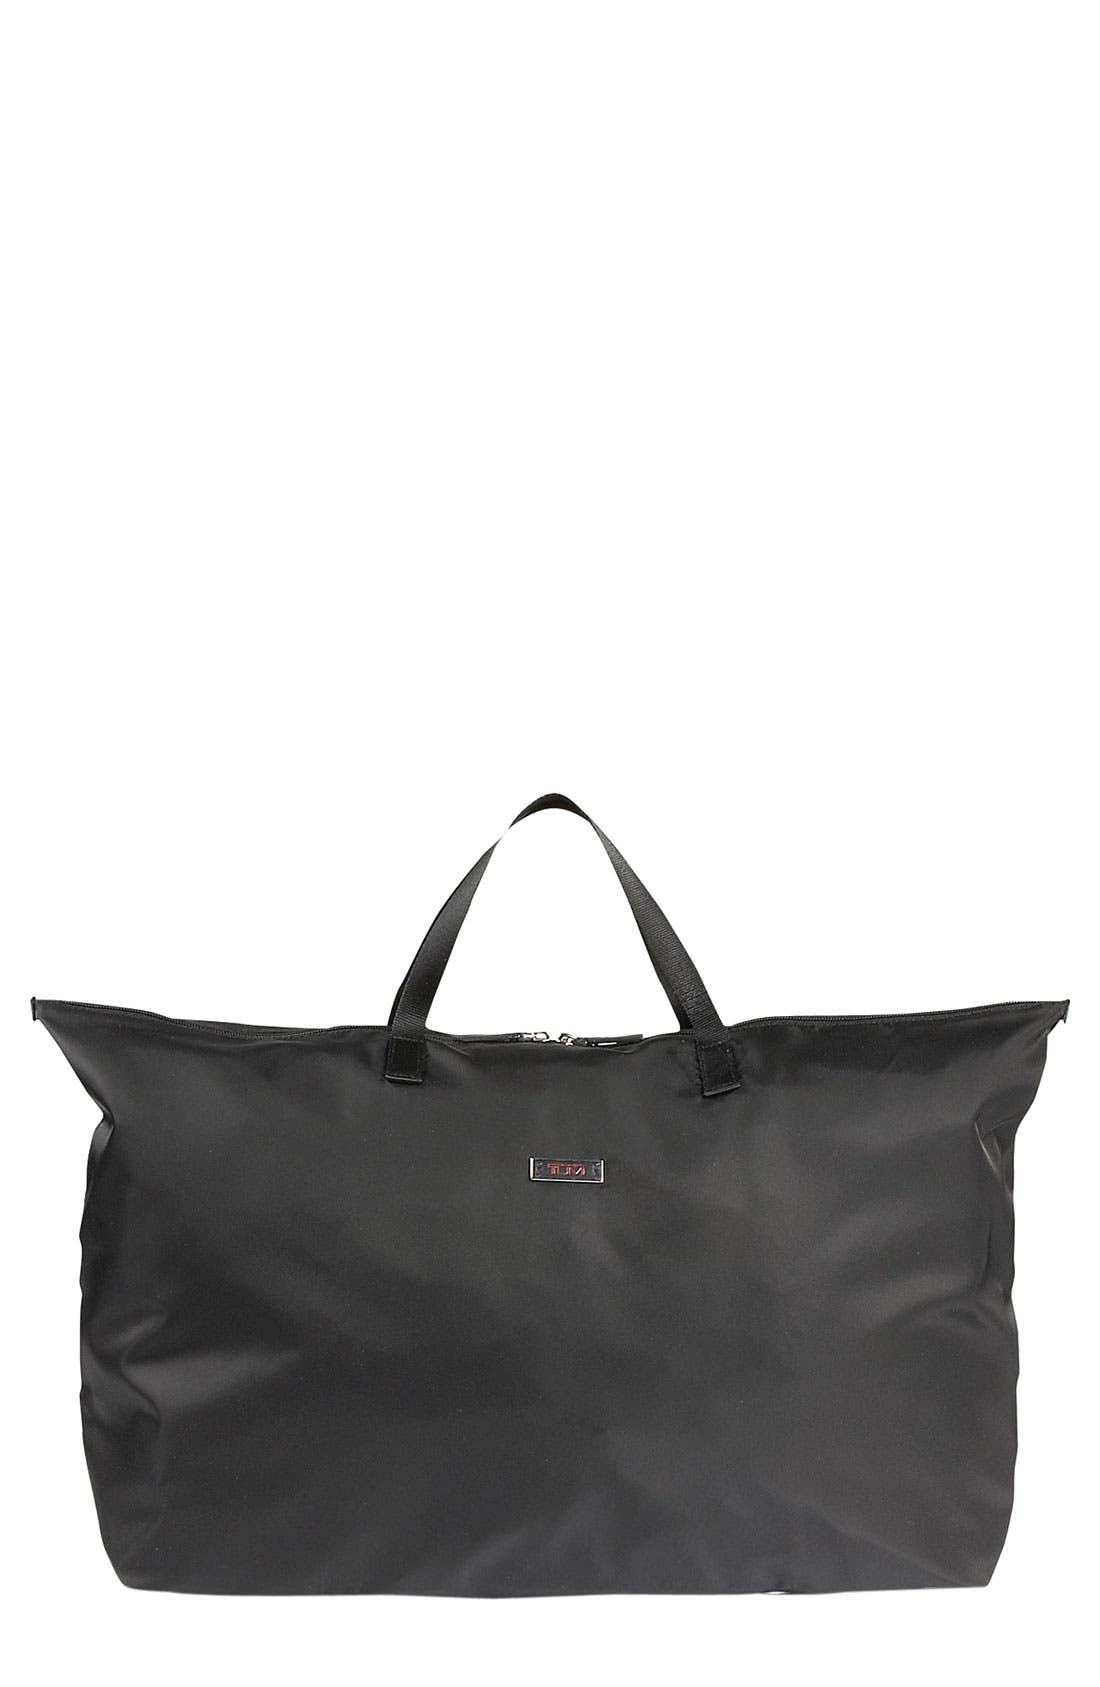 TUMI,                             'Just in Case' Packable Tote,                             Main thumbnail 1, color,                             001